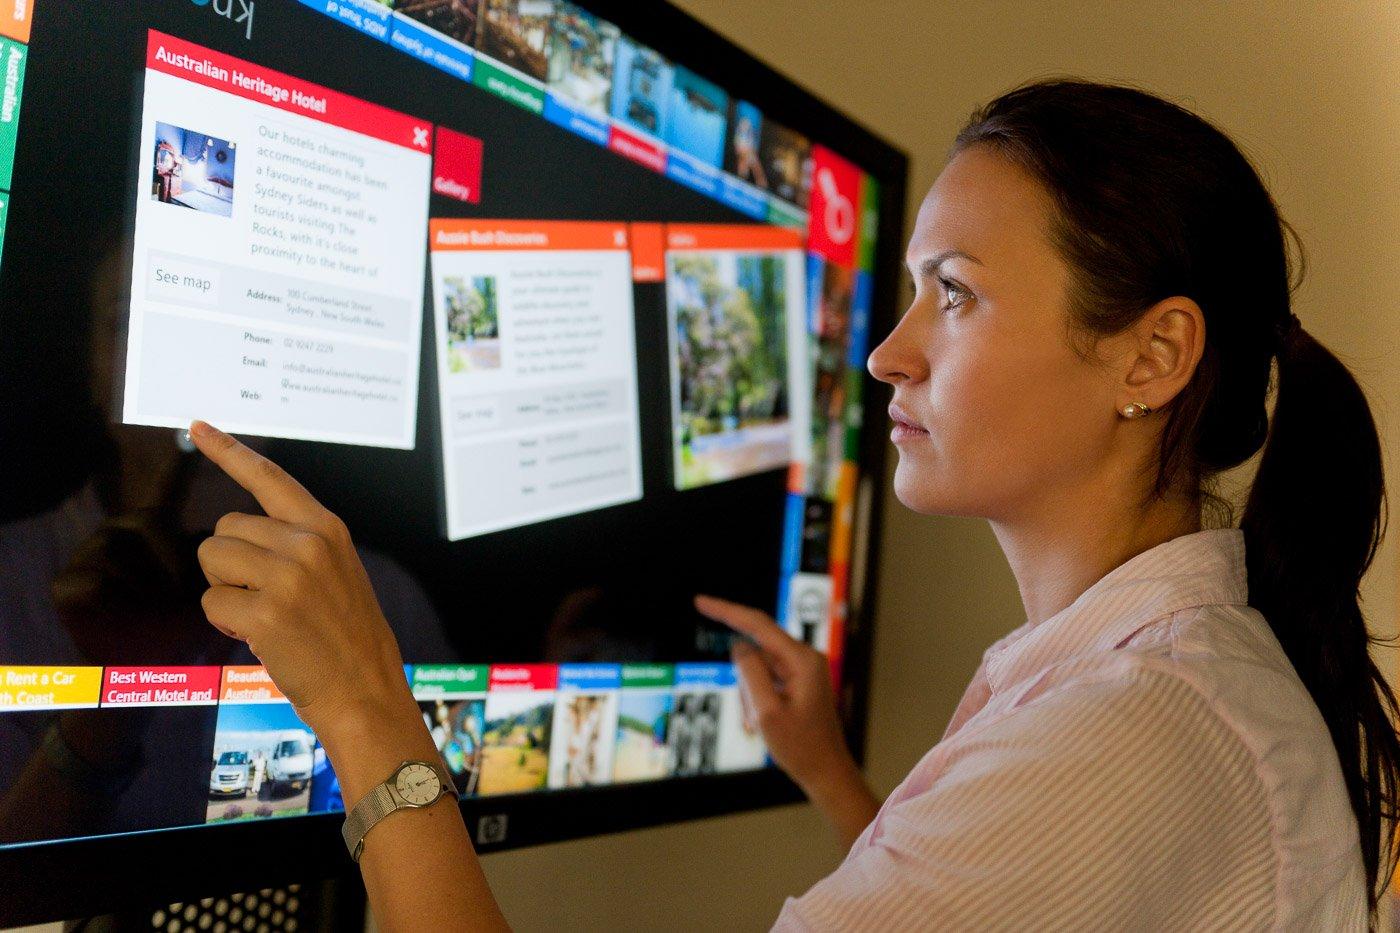 Woman interacting with a touchscreen